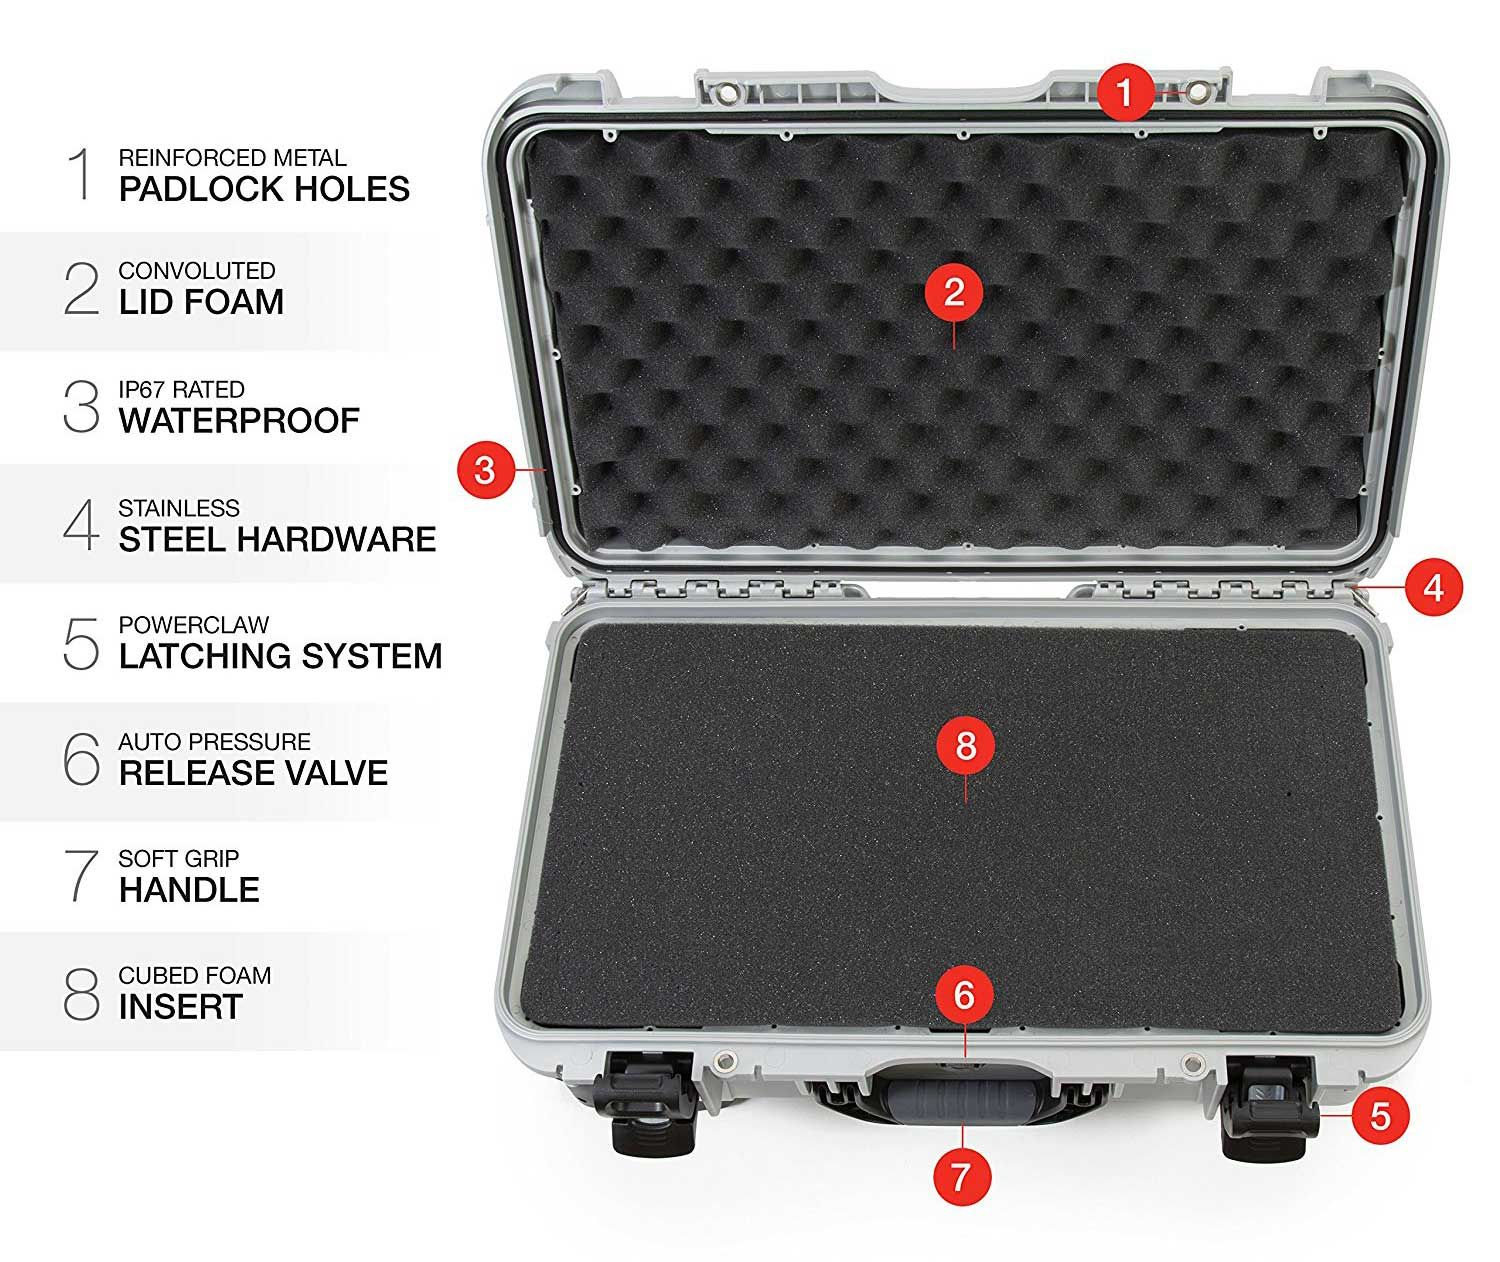 The Features of the Nanuk 935 Hard Case